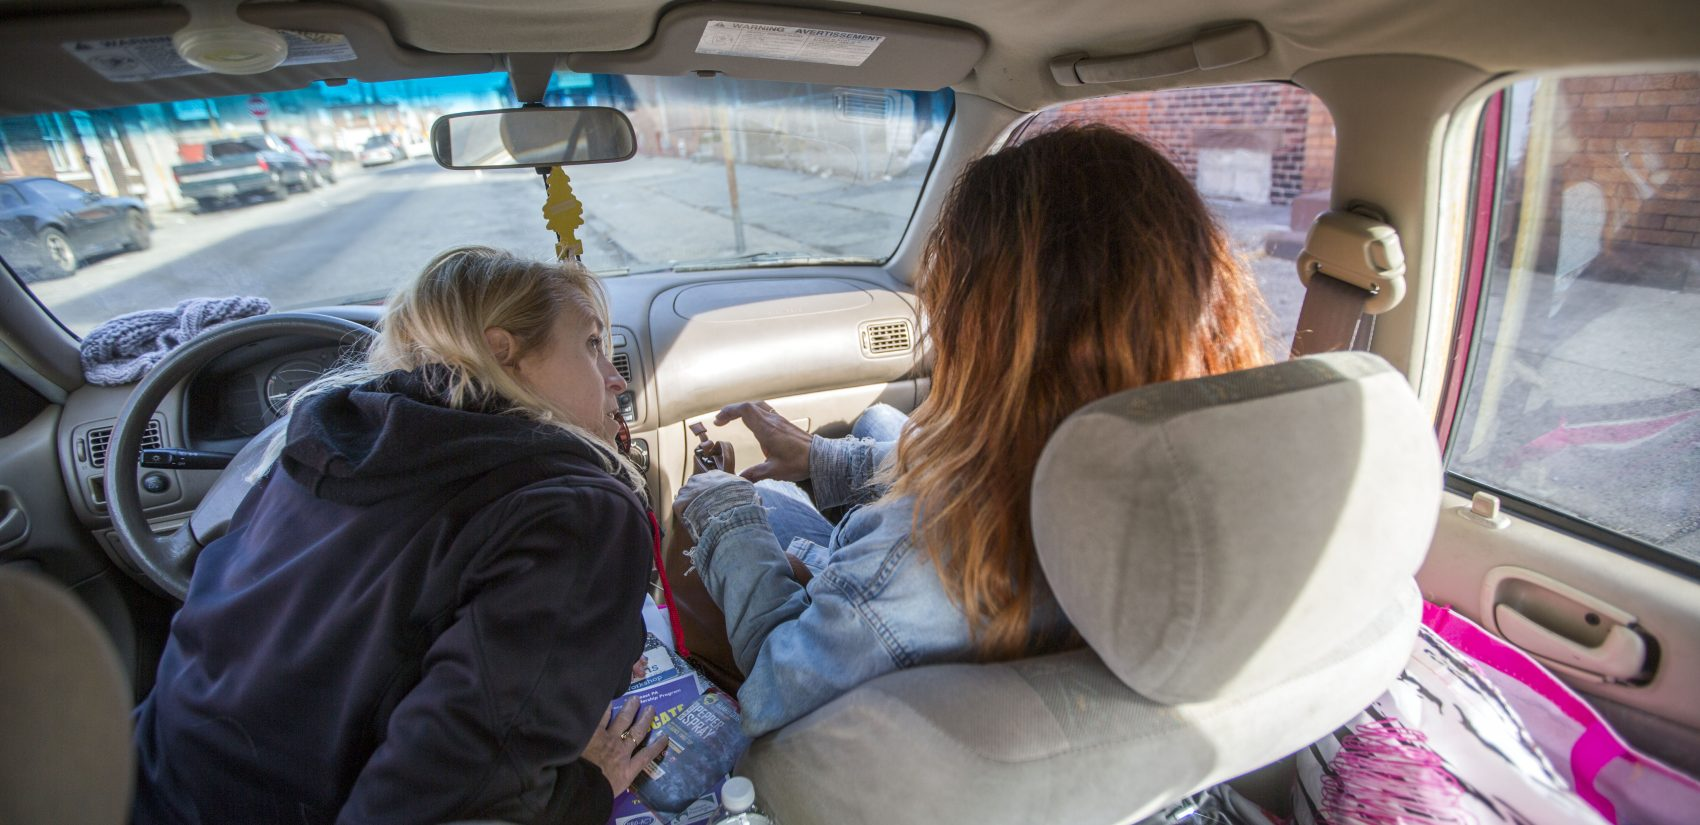 Carol Rostucher (left) and Barb Burns ride through the Kensington neighborhood of Philadelphia doing outreach to the homeless and those struggling with addiction. Rostucher started the non-profit Angels in Motion. (Jessica Kourkounis/For Keystone Crossroads)